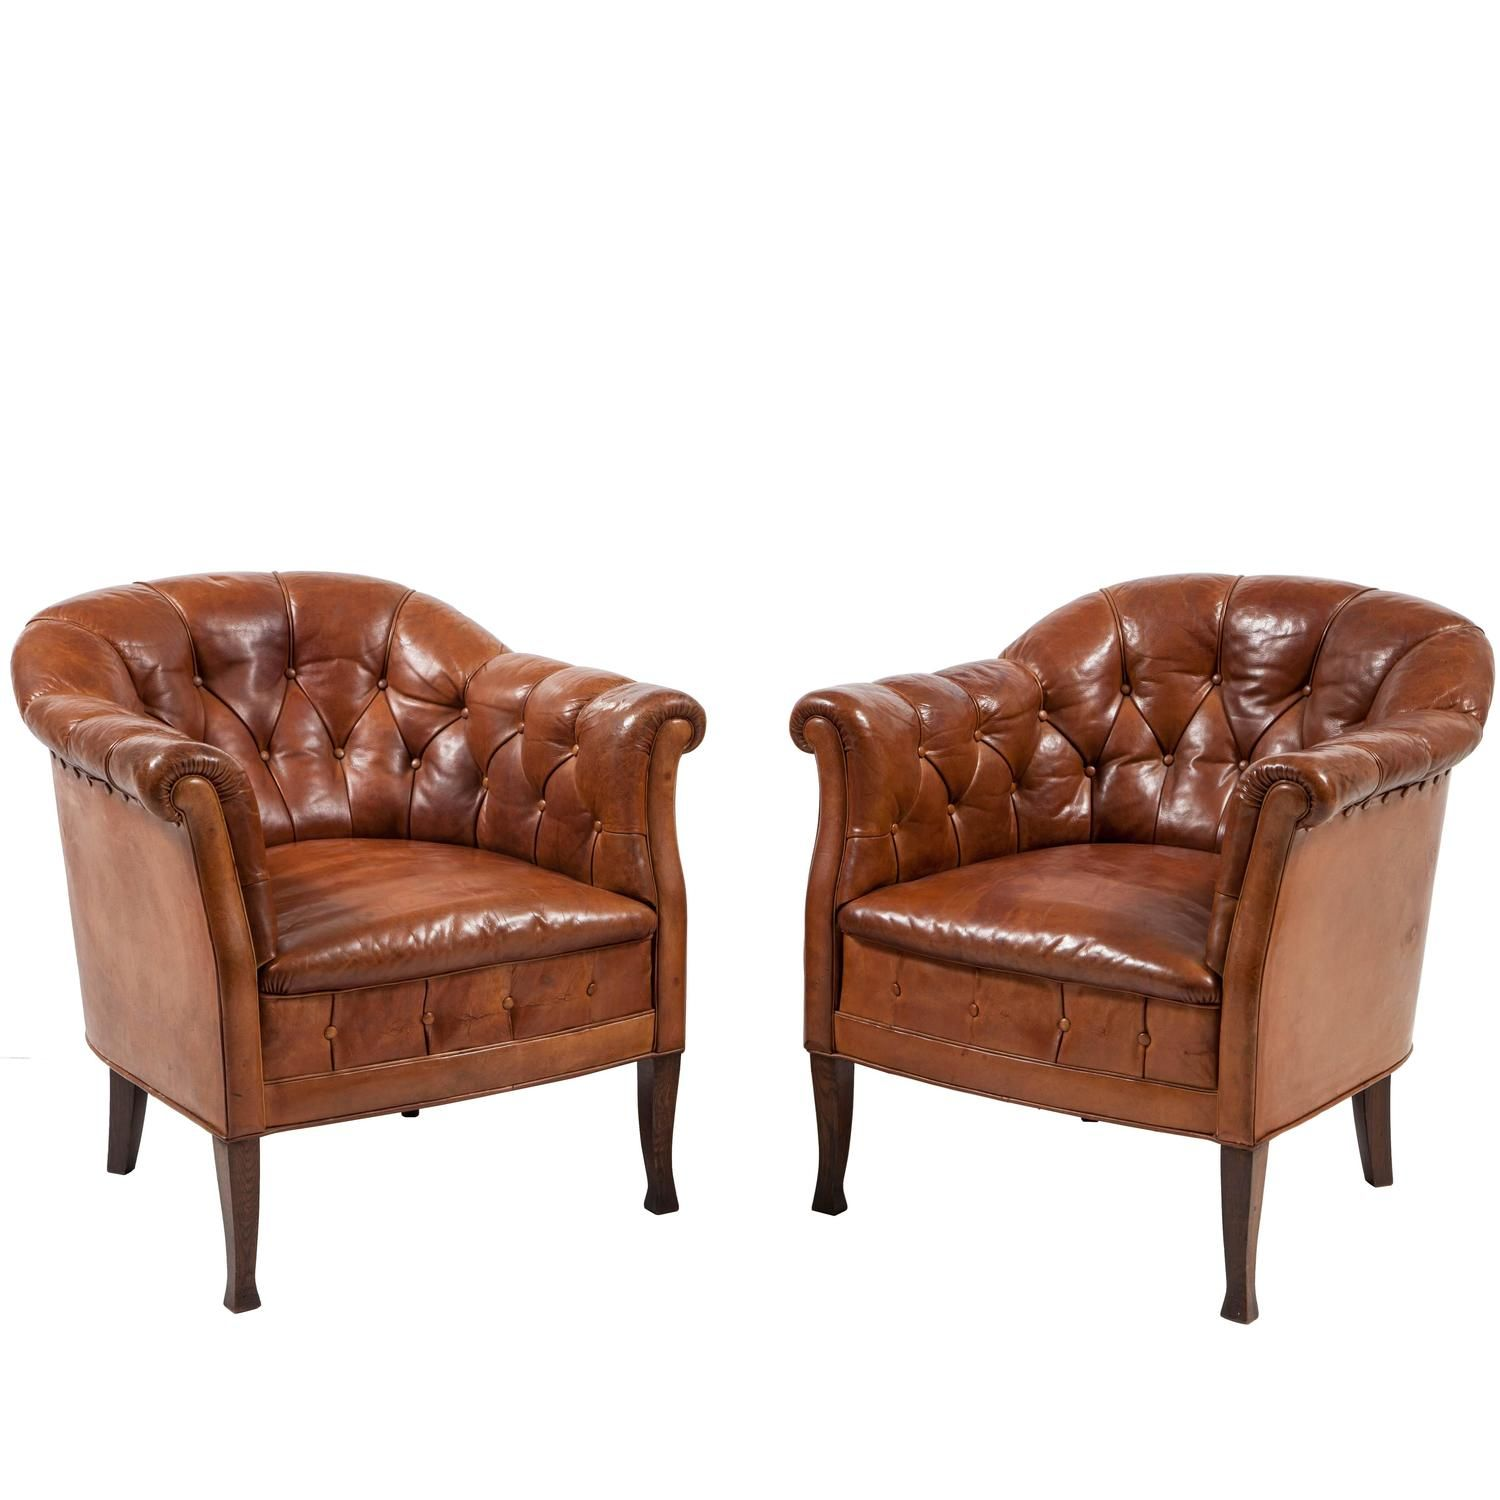 Small Club Chair Pair Of Swedish Leather Club Chairs Furniture Leather Club